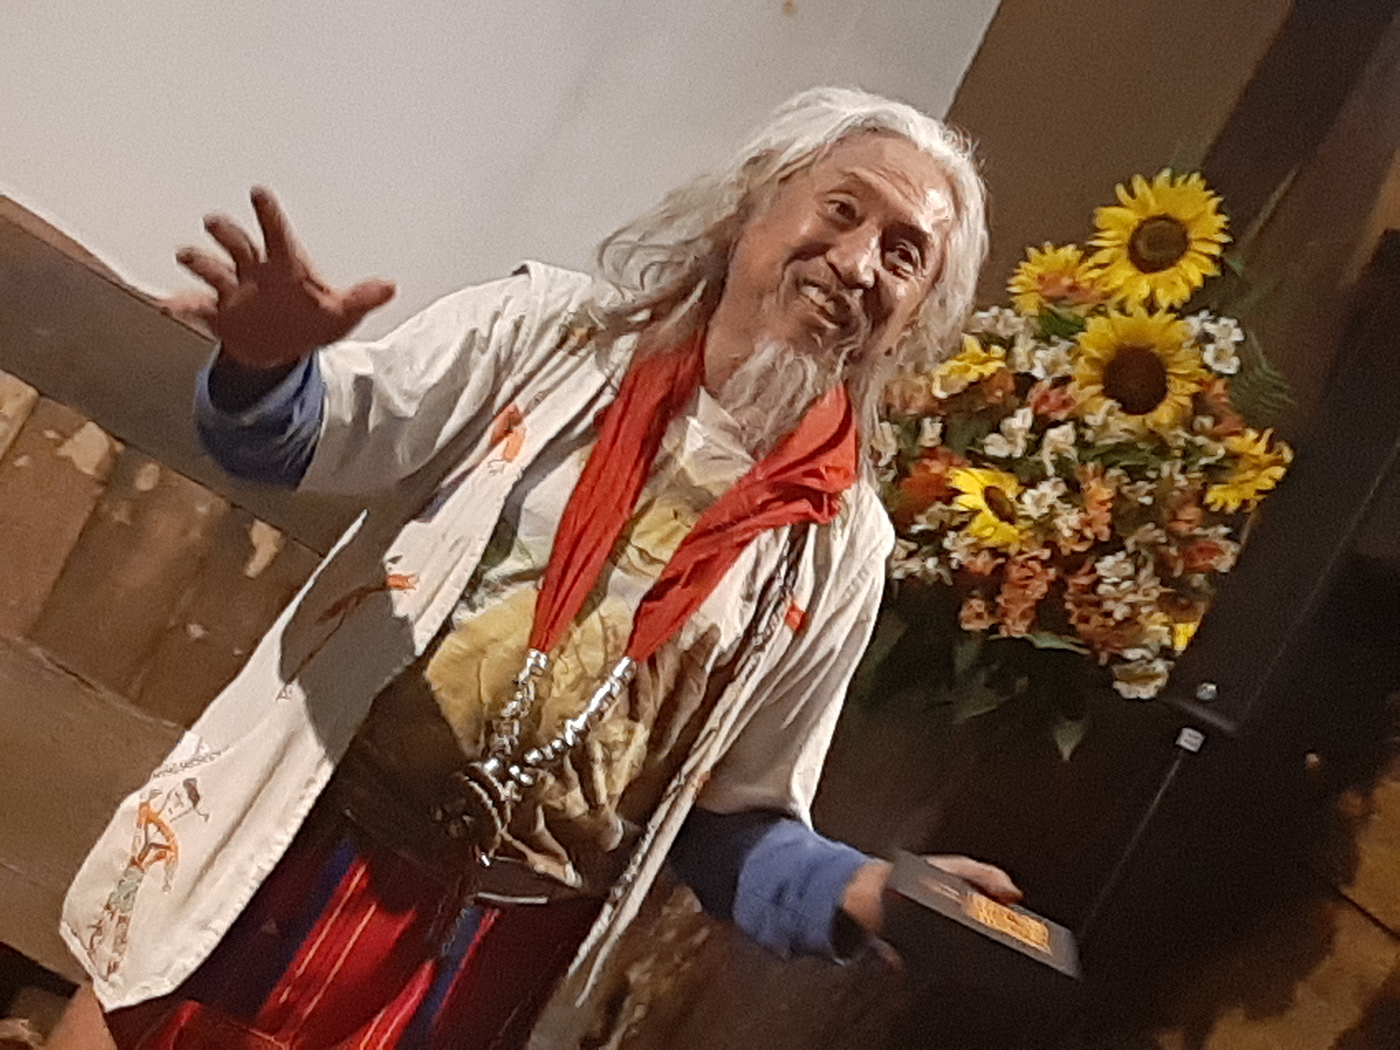 At House hearing on ABS-CBN franchise, Kidlat Tahimik laments all networks' 'bias for trending' - Rappler